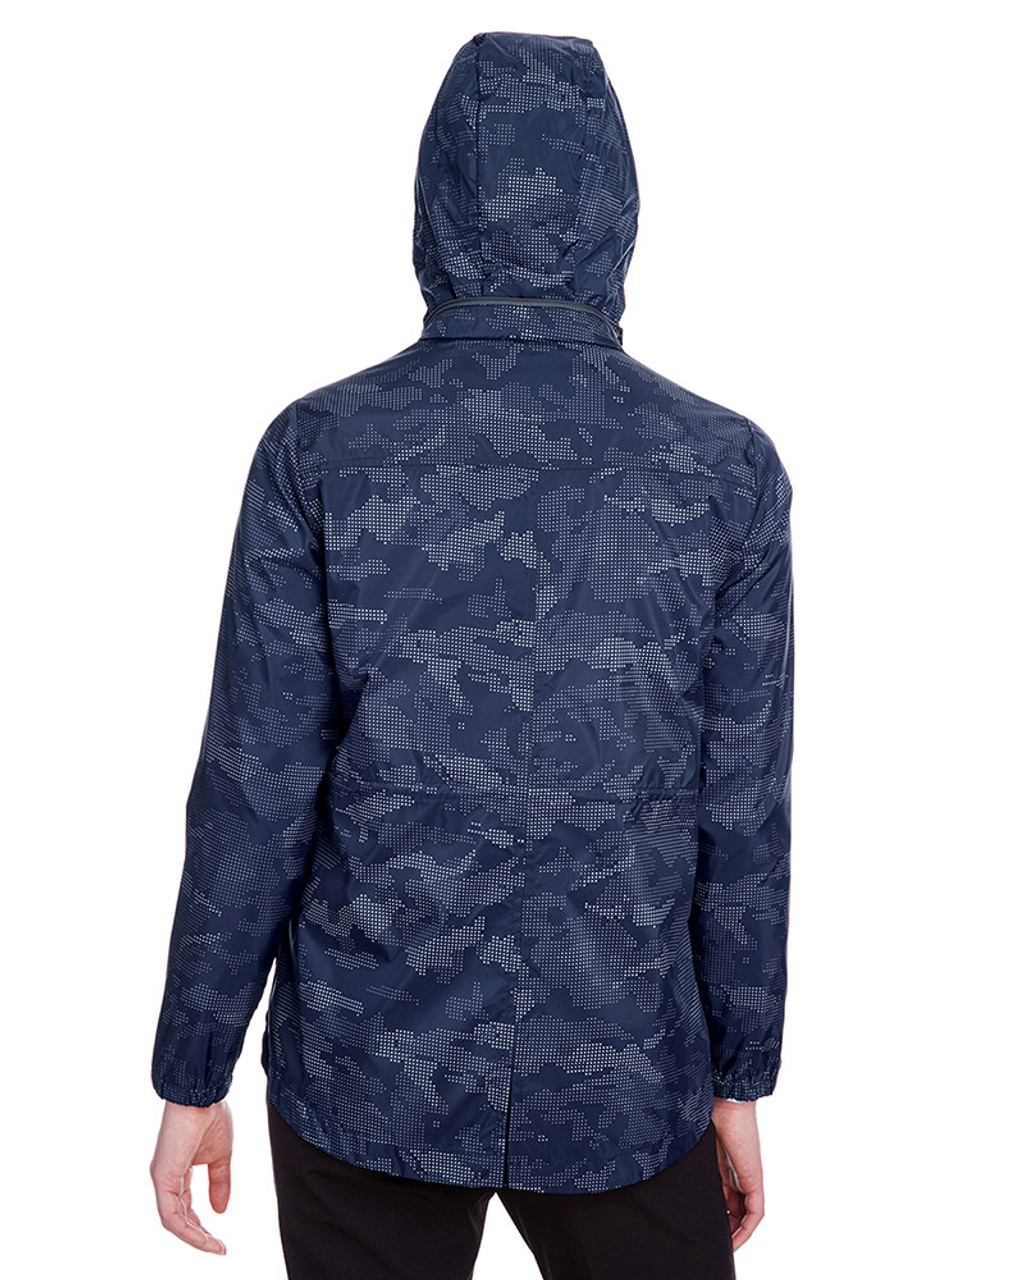 Classic Navy/Carbon - back, NE711W North End Ladies' Rotate Reflective Jacket | Blankclothing.ca